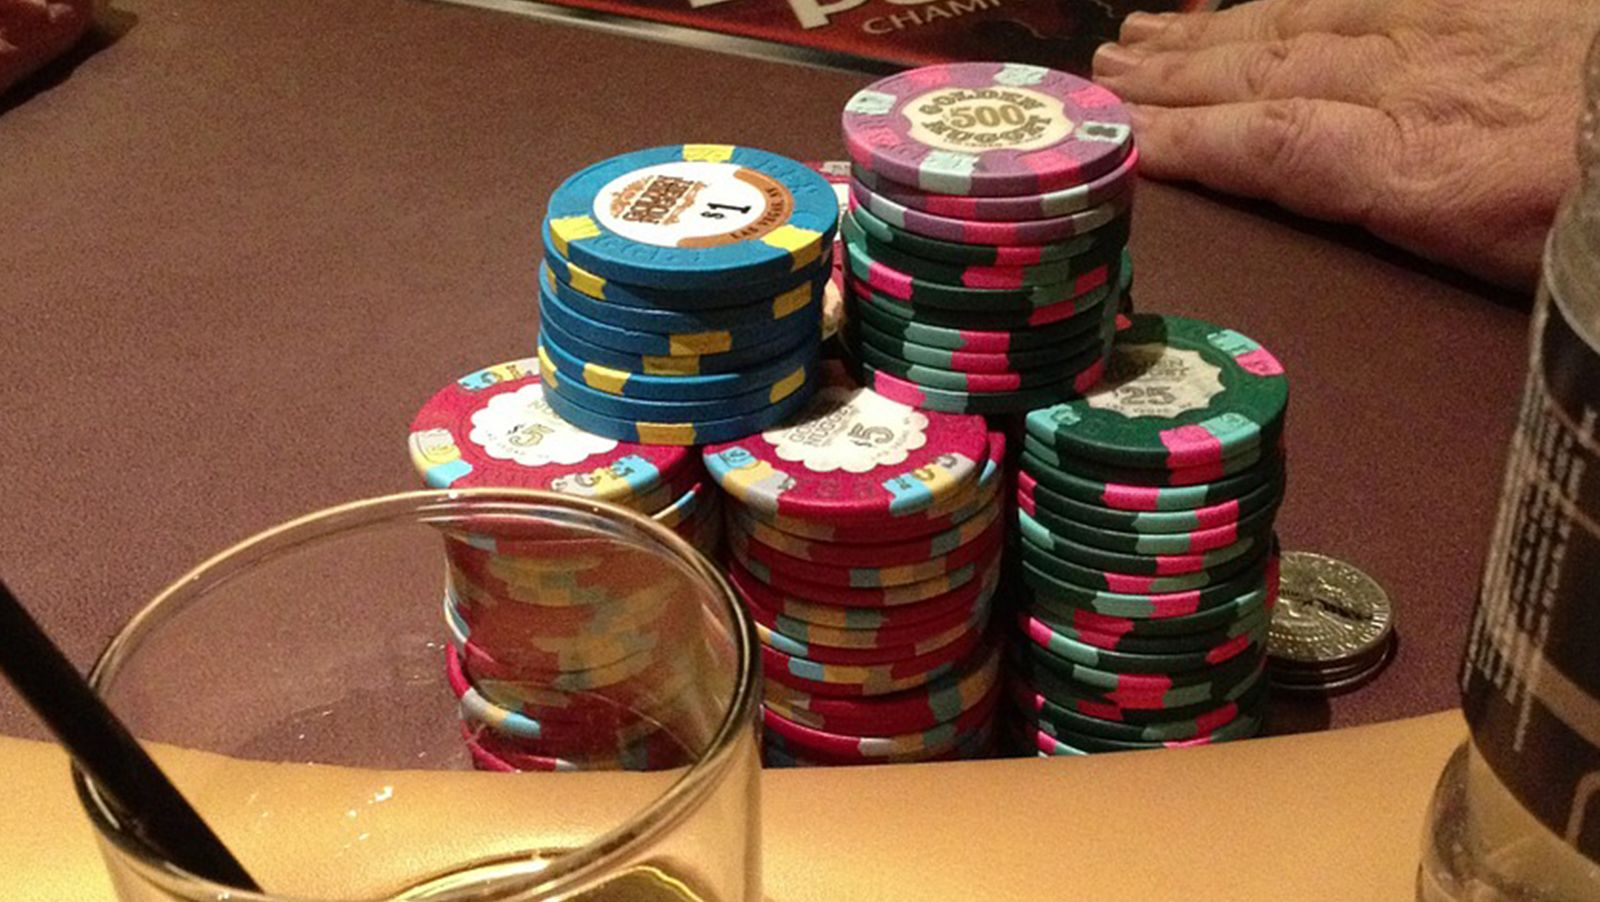 gukpt-main-event-proves-the-power-of-mainstream-media-in-poker